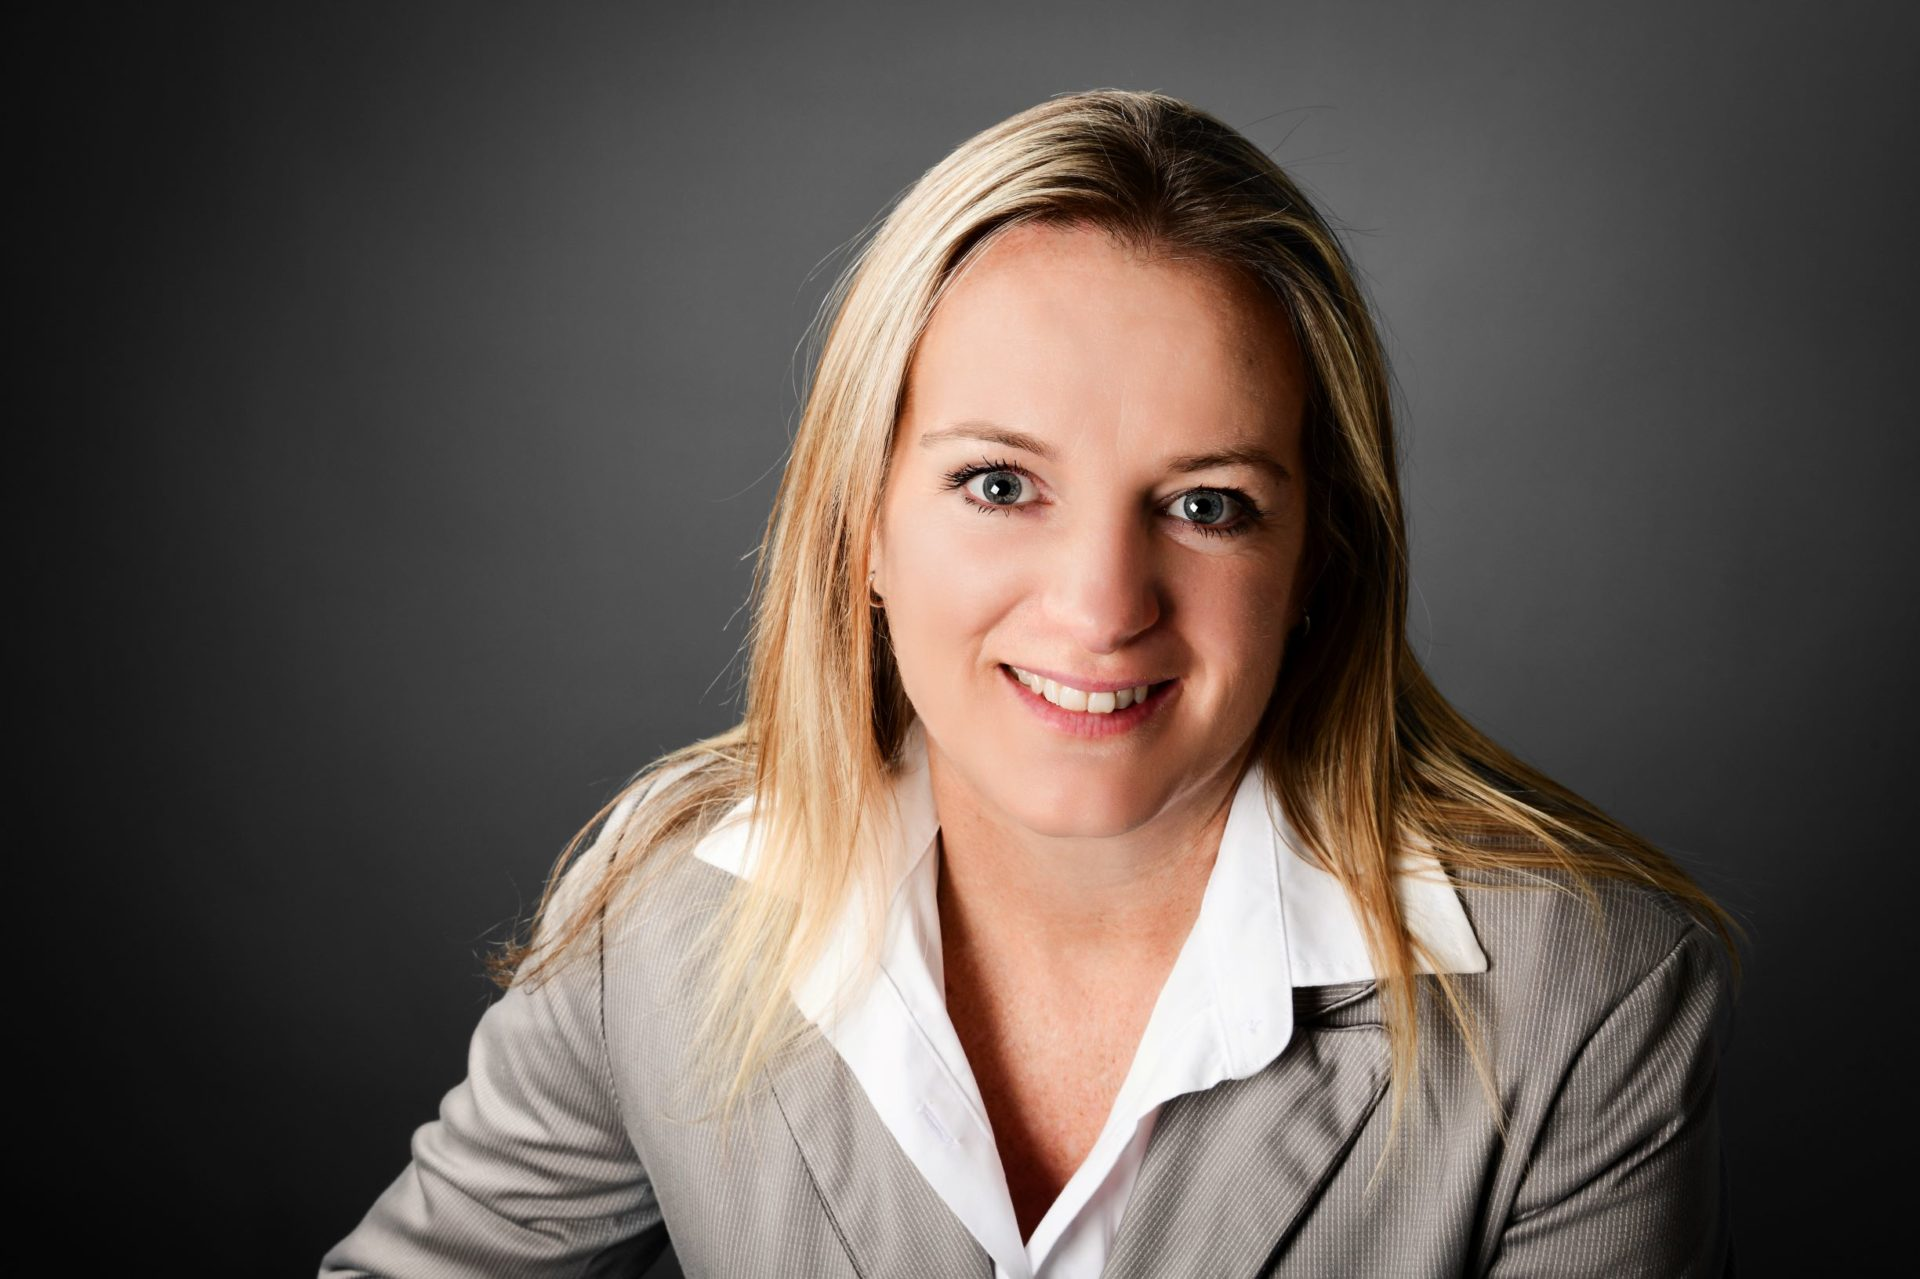 Dr Nicole Hart, the new managing director at Afrikelp. Photo: Supplied